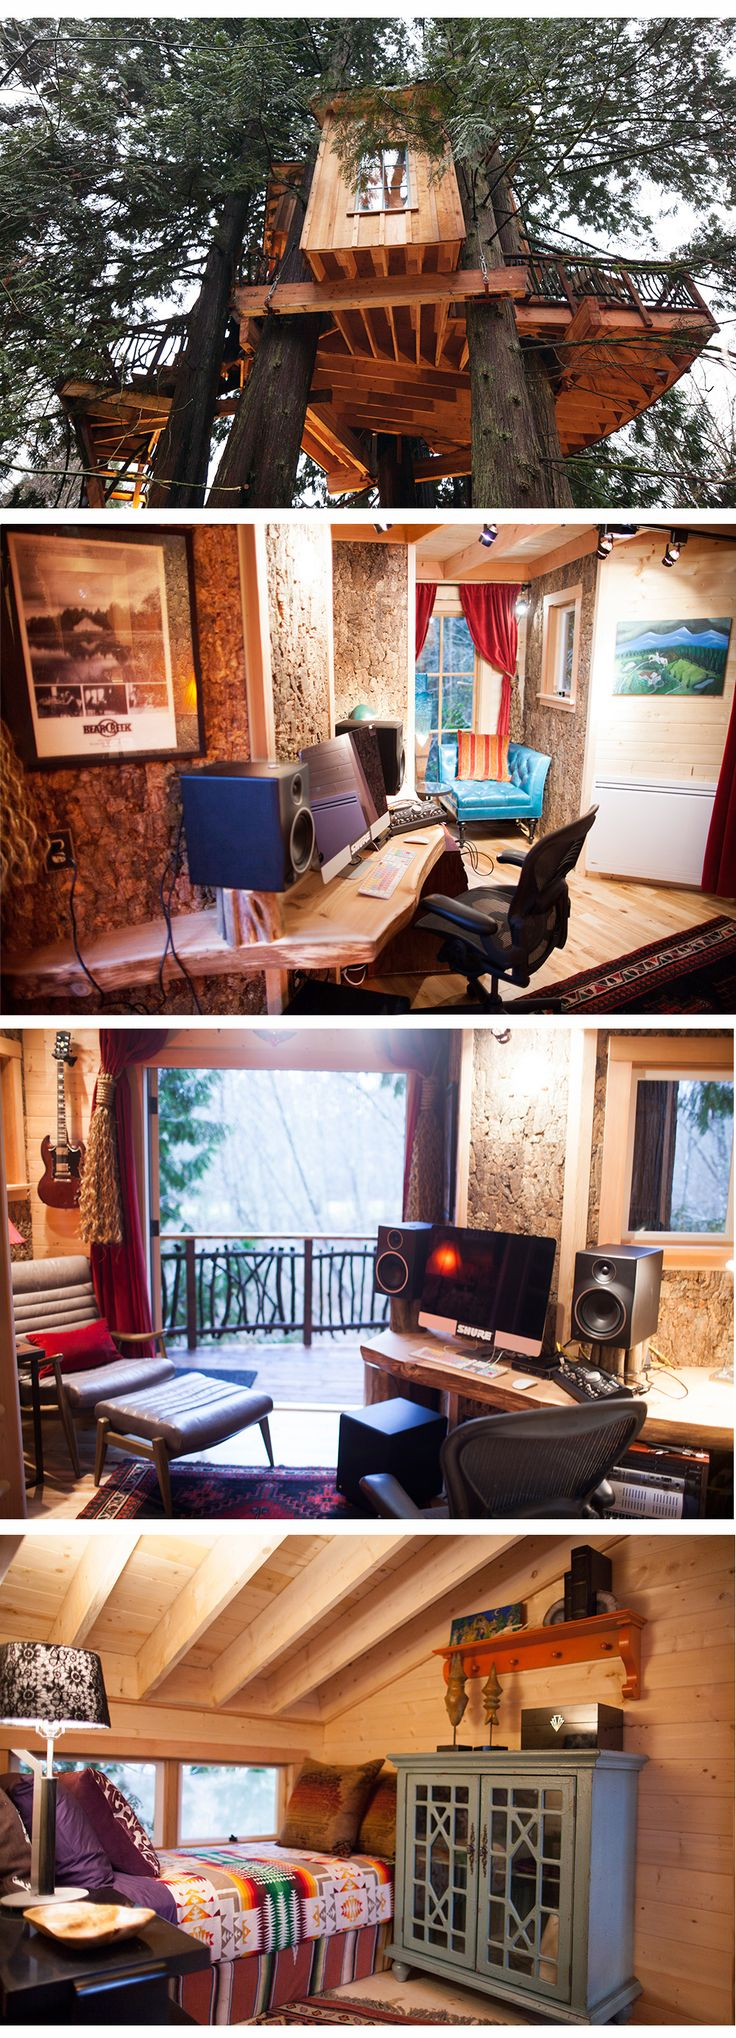 Shipping container music studio joy studio design gallery best - Bear Creek Recording Studio Tree House All They Need Is Nuendo And It Will Be Perfect